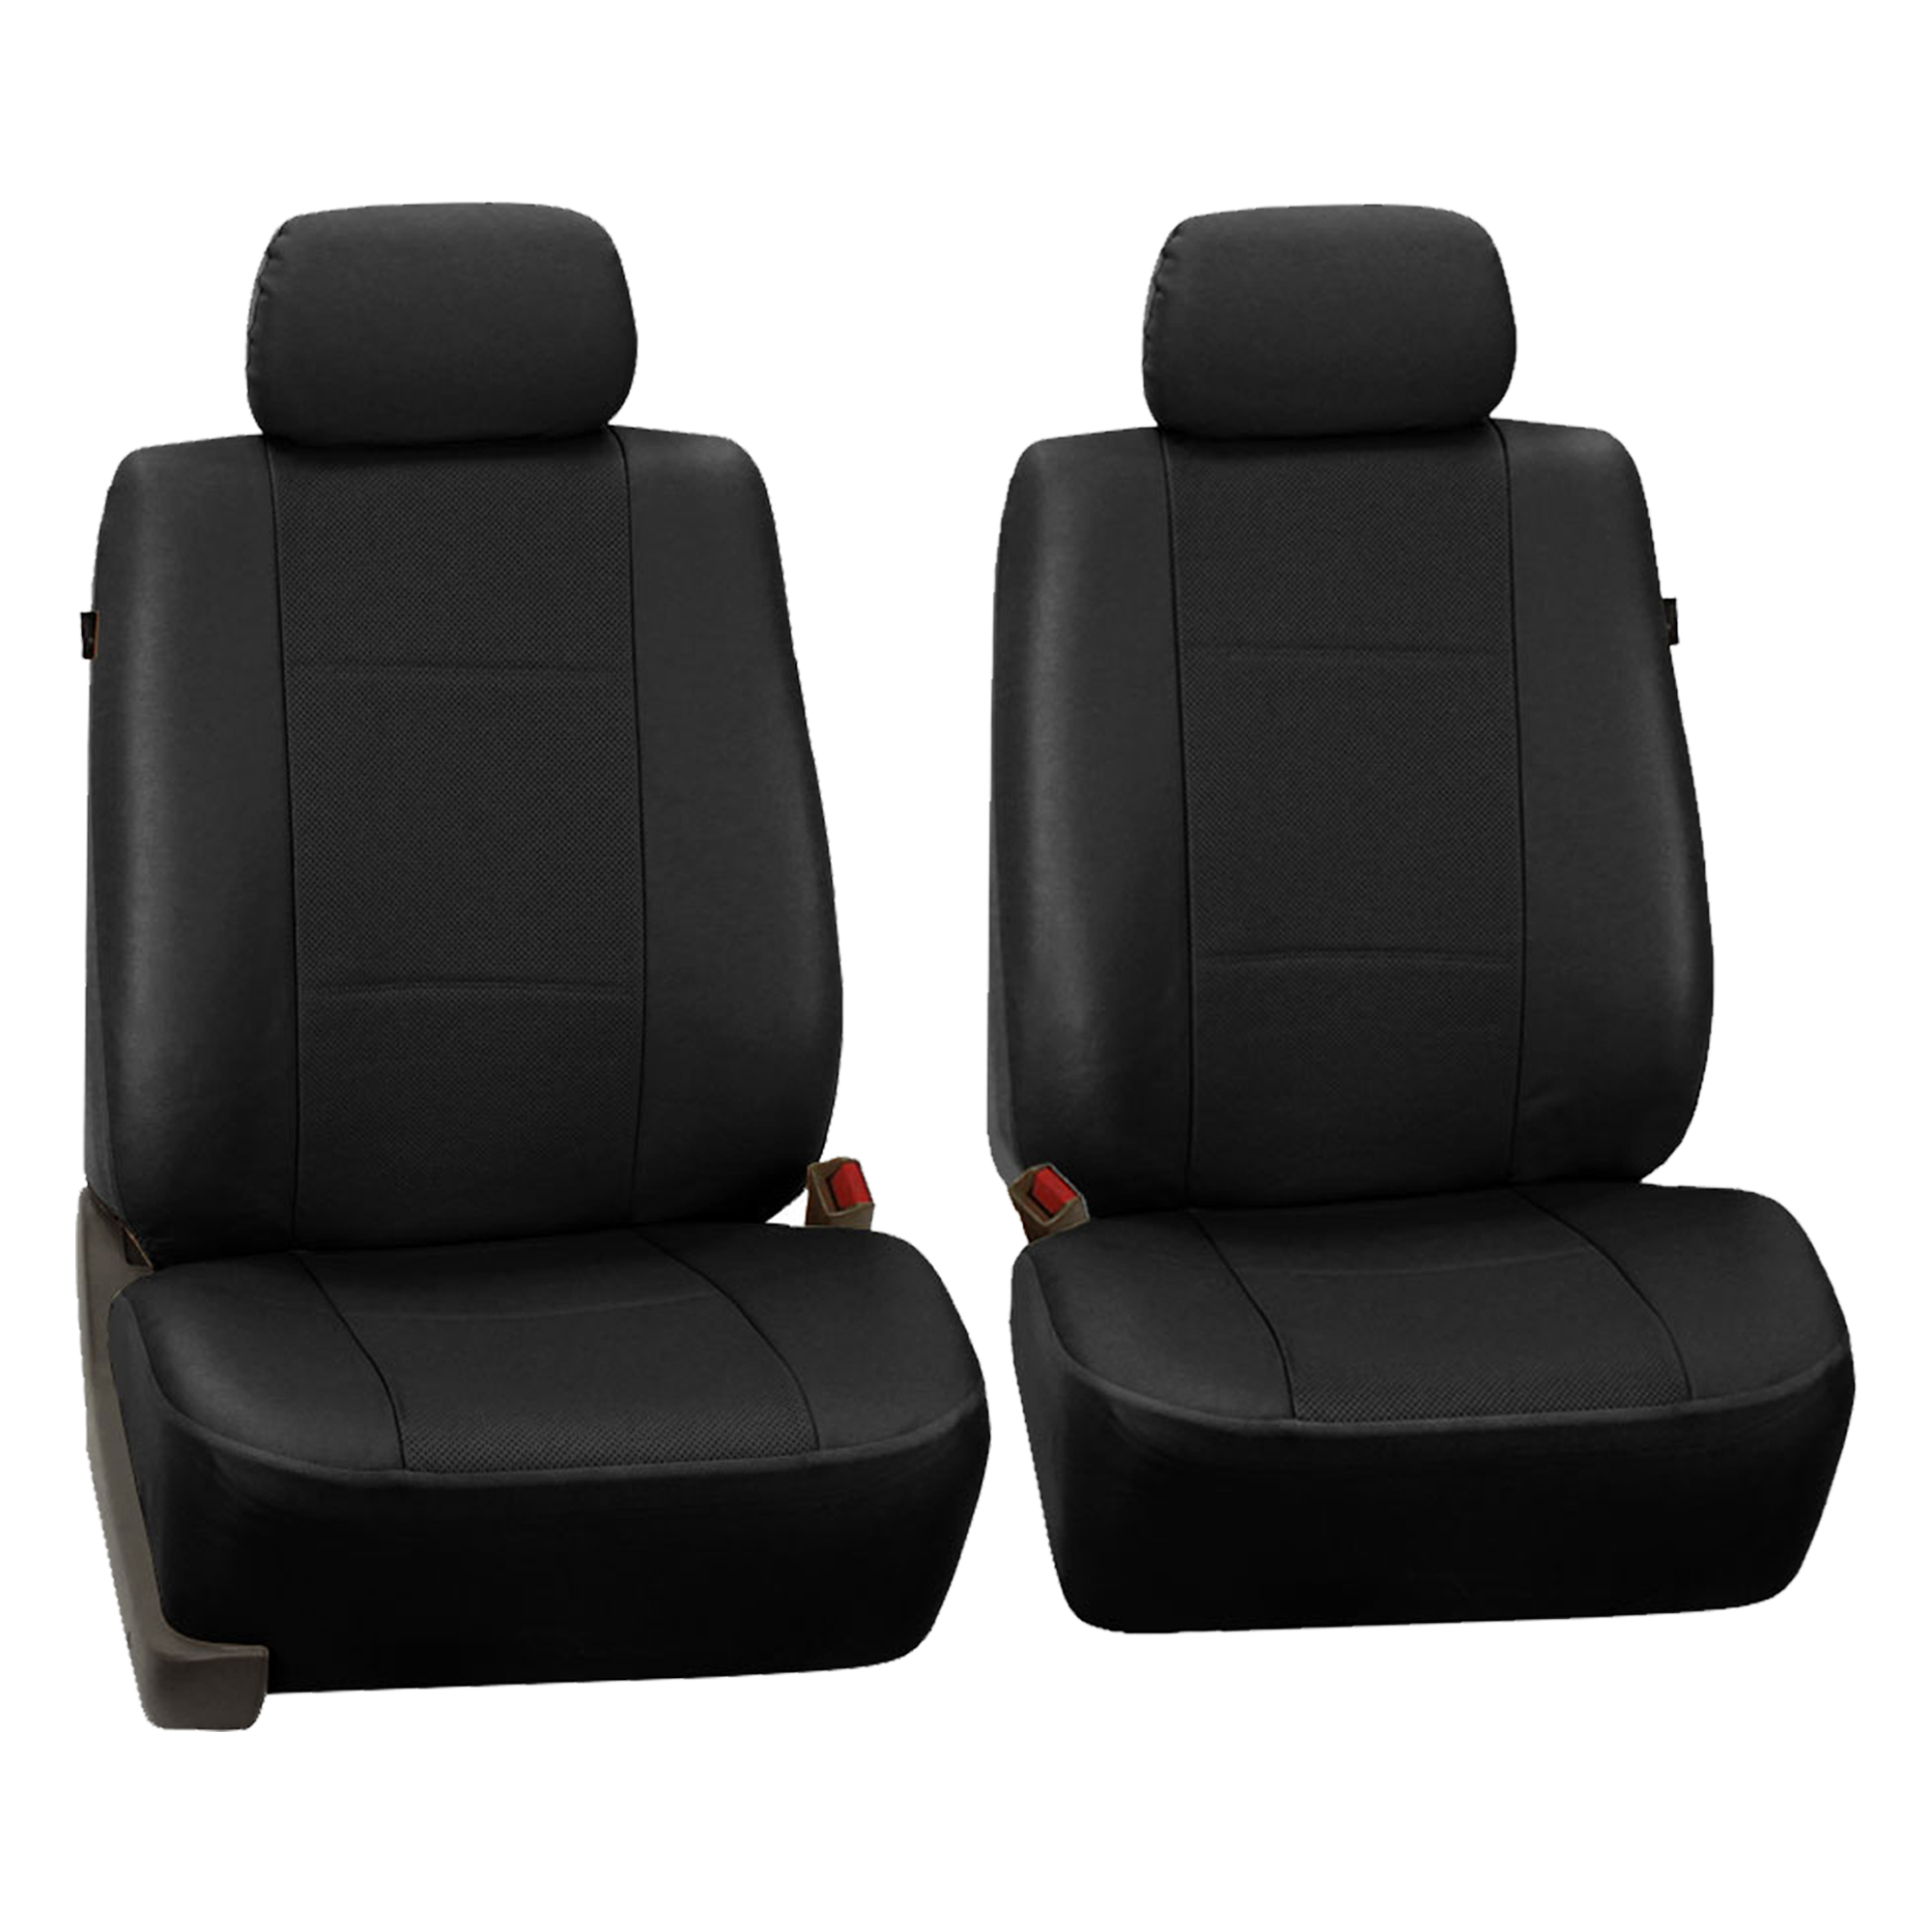 3 Row Car Seat Covers Faux Leather Luxury Top Quality For